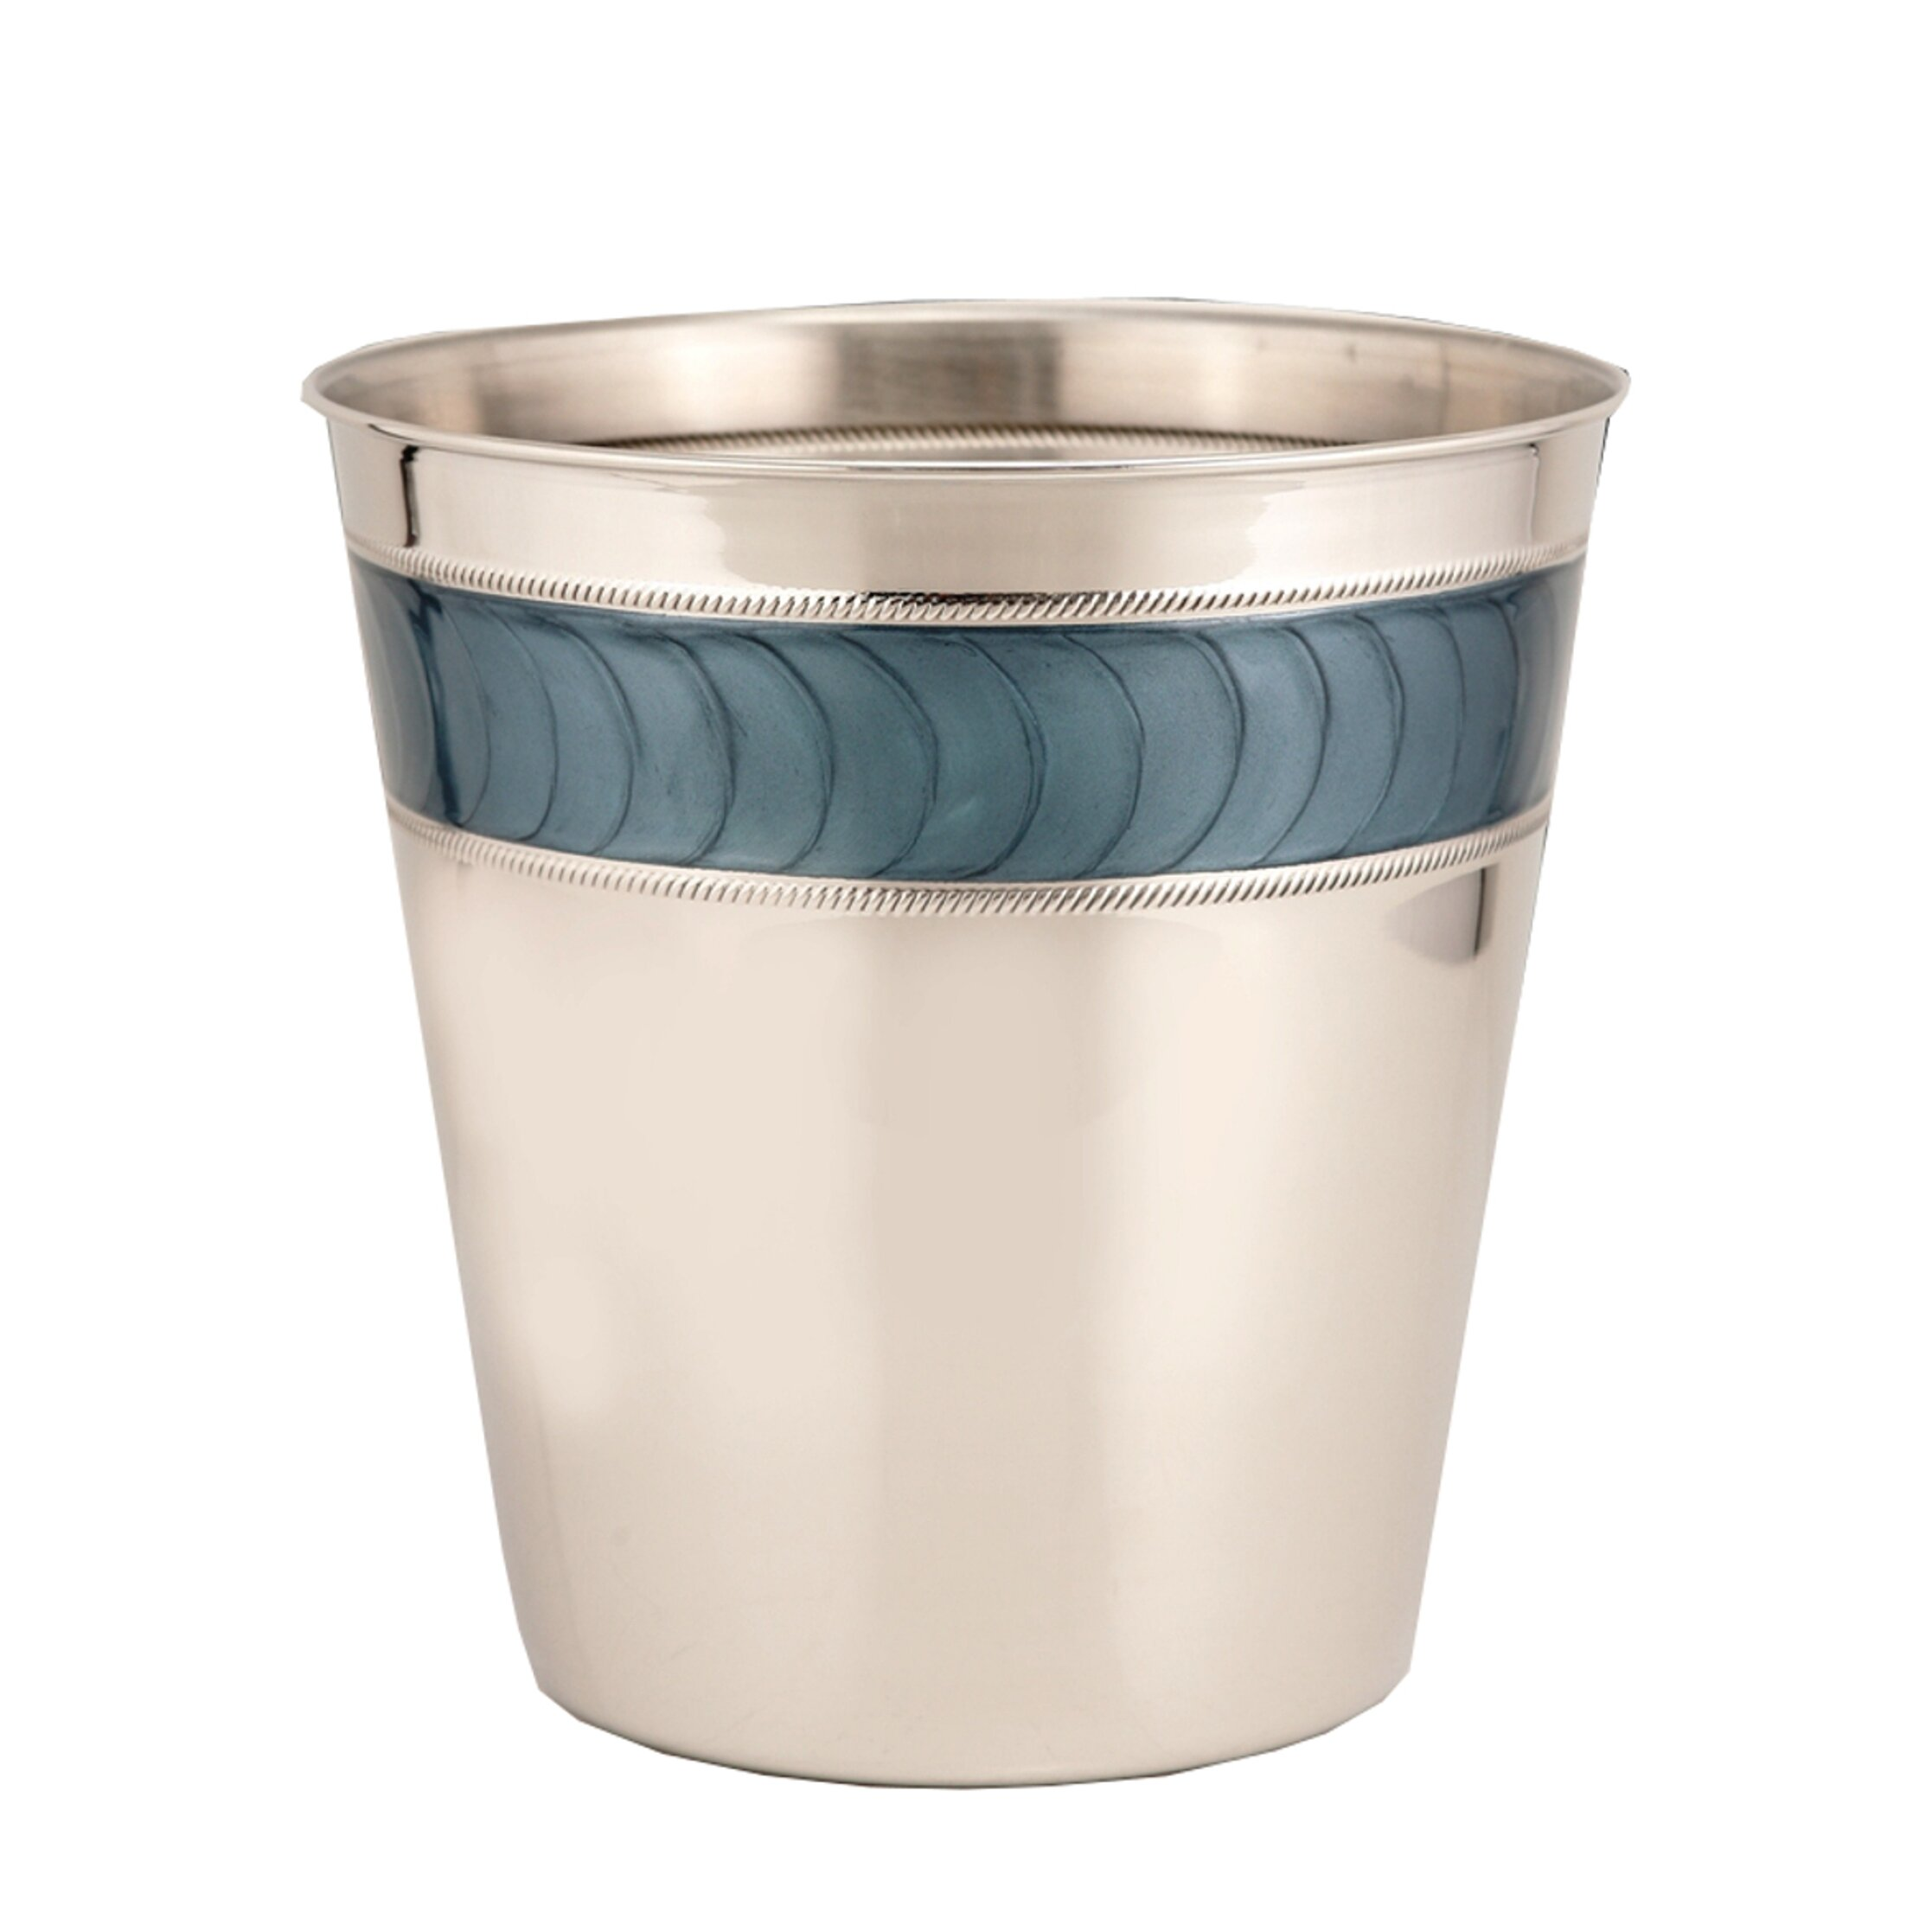 Fashion Home Express 3 Gallon Stainless Steel Trash Can